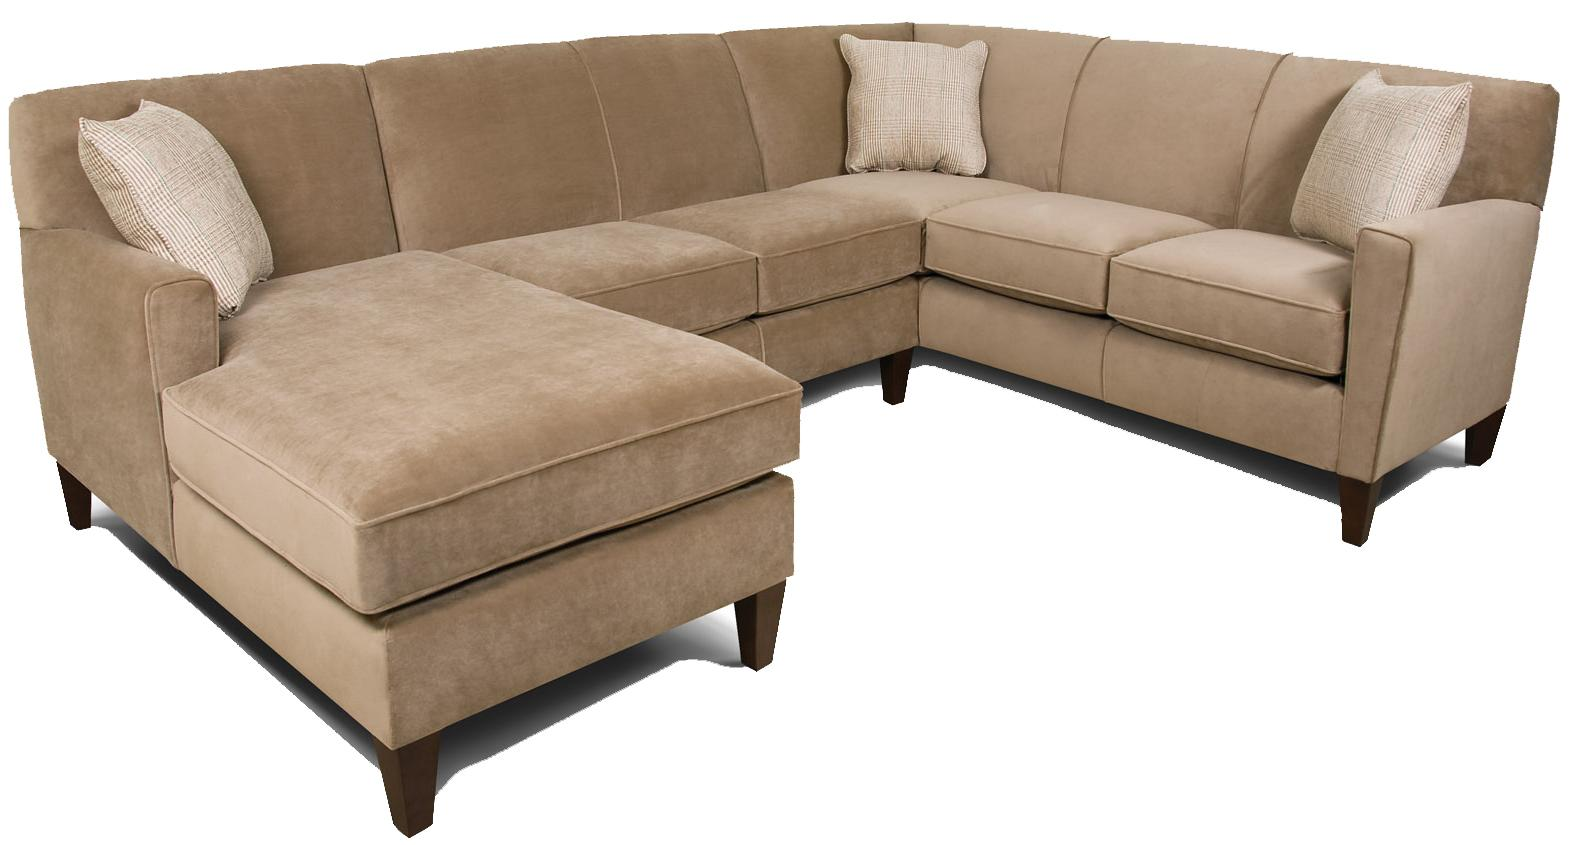 England collegedale contemporary 3 piece sectional sofa for England furniture